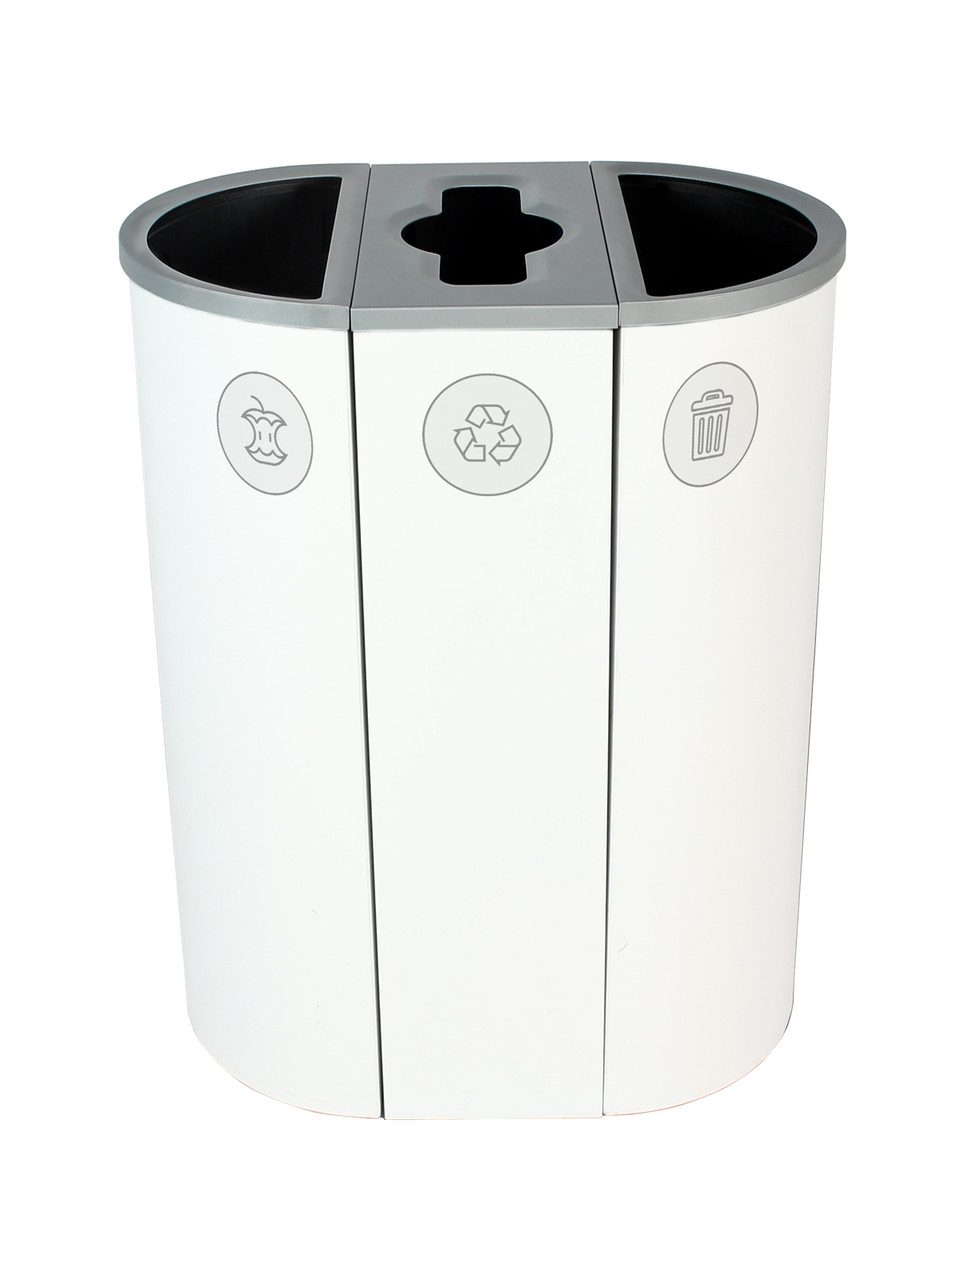 26 Gallon Spectrum Triple Recycling Station White 8107116-424